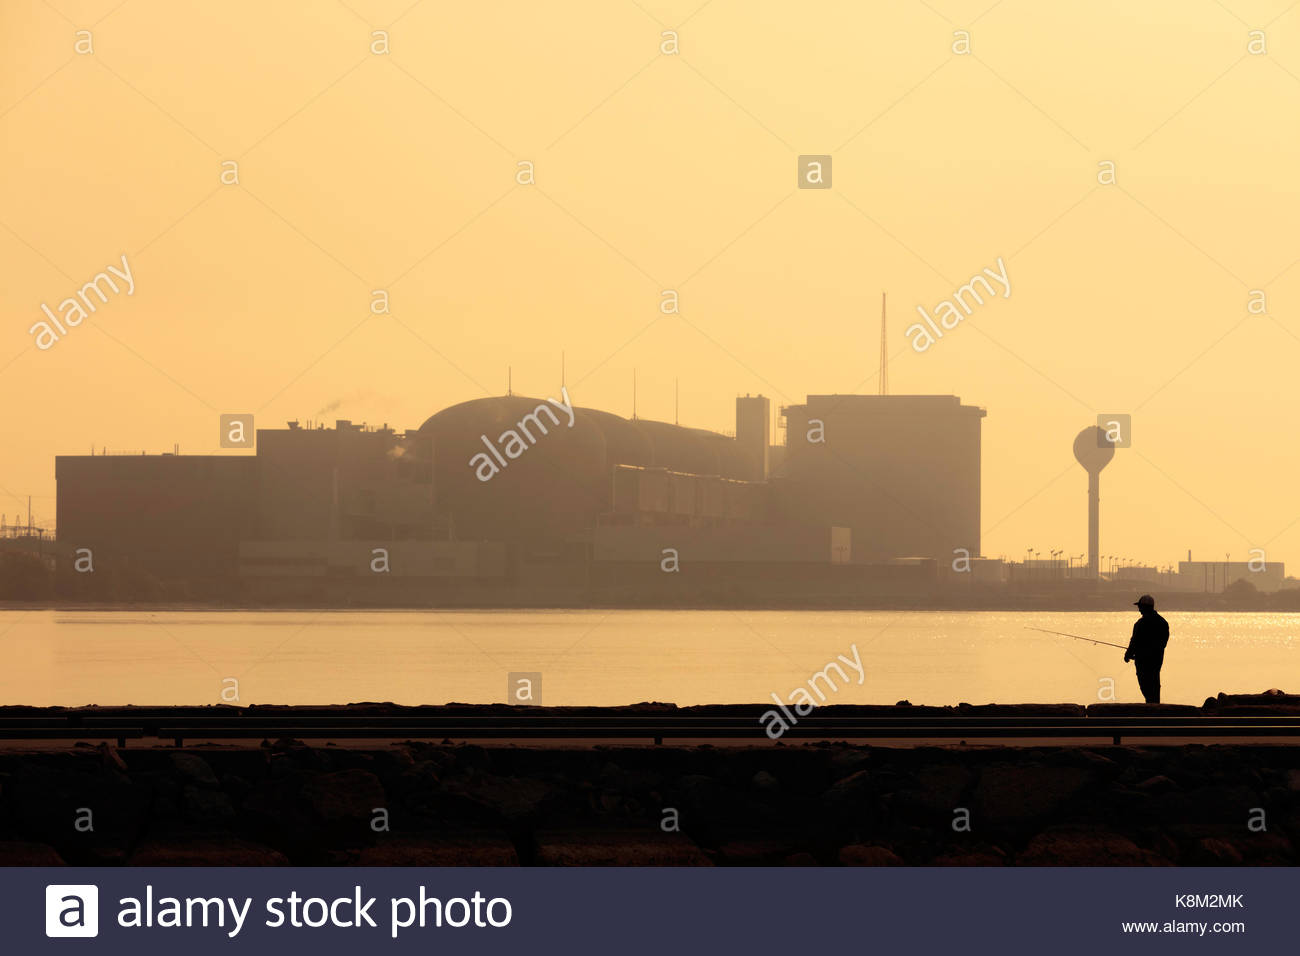 Candu nuclear electric power station reactor producing electric energy atomic power at Pickering Ontario Canada - Stock Image